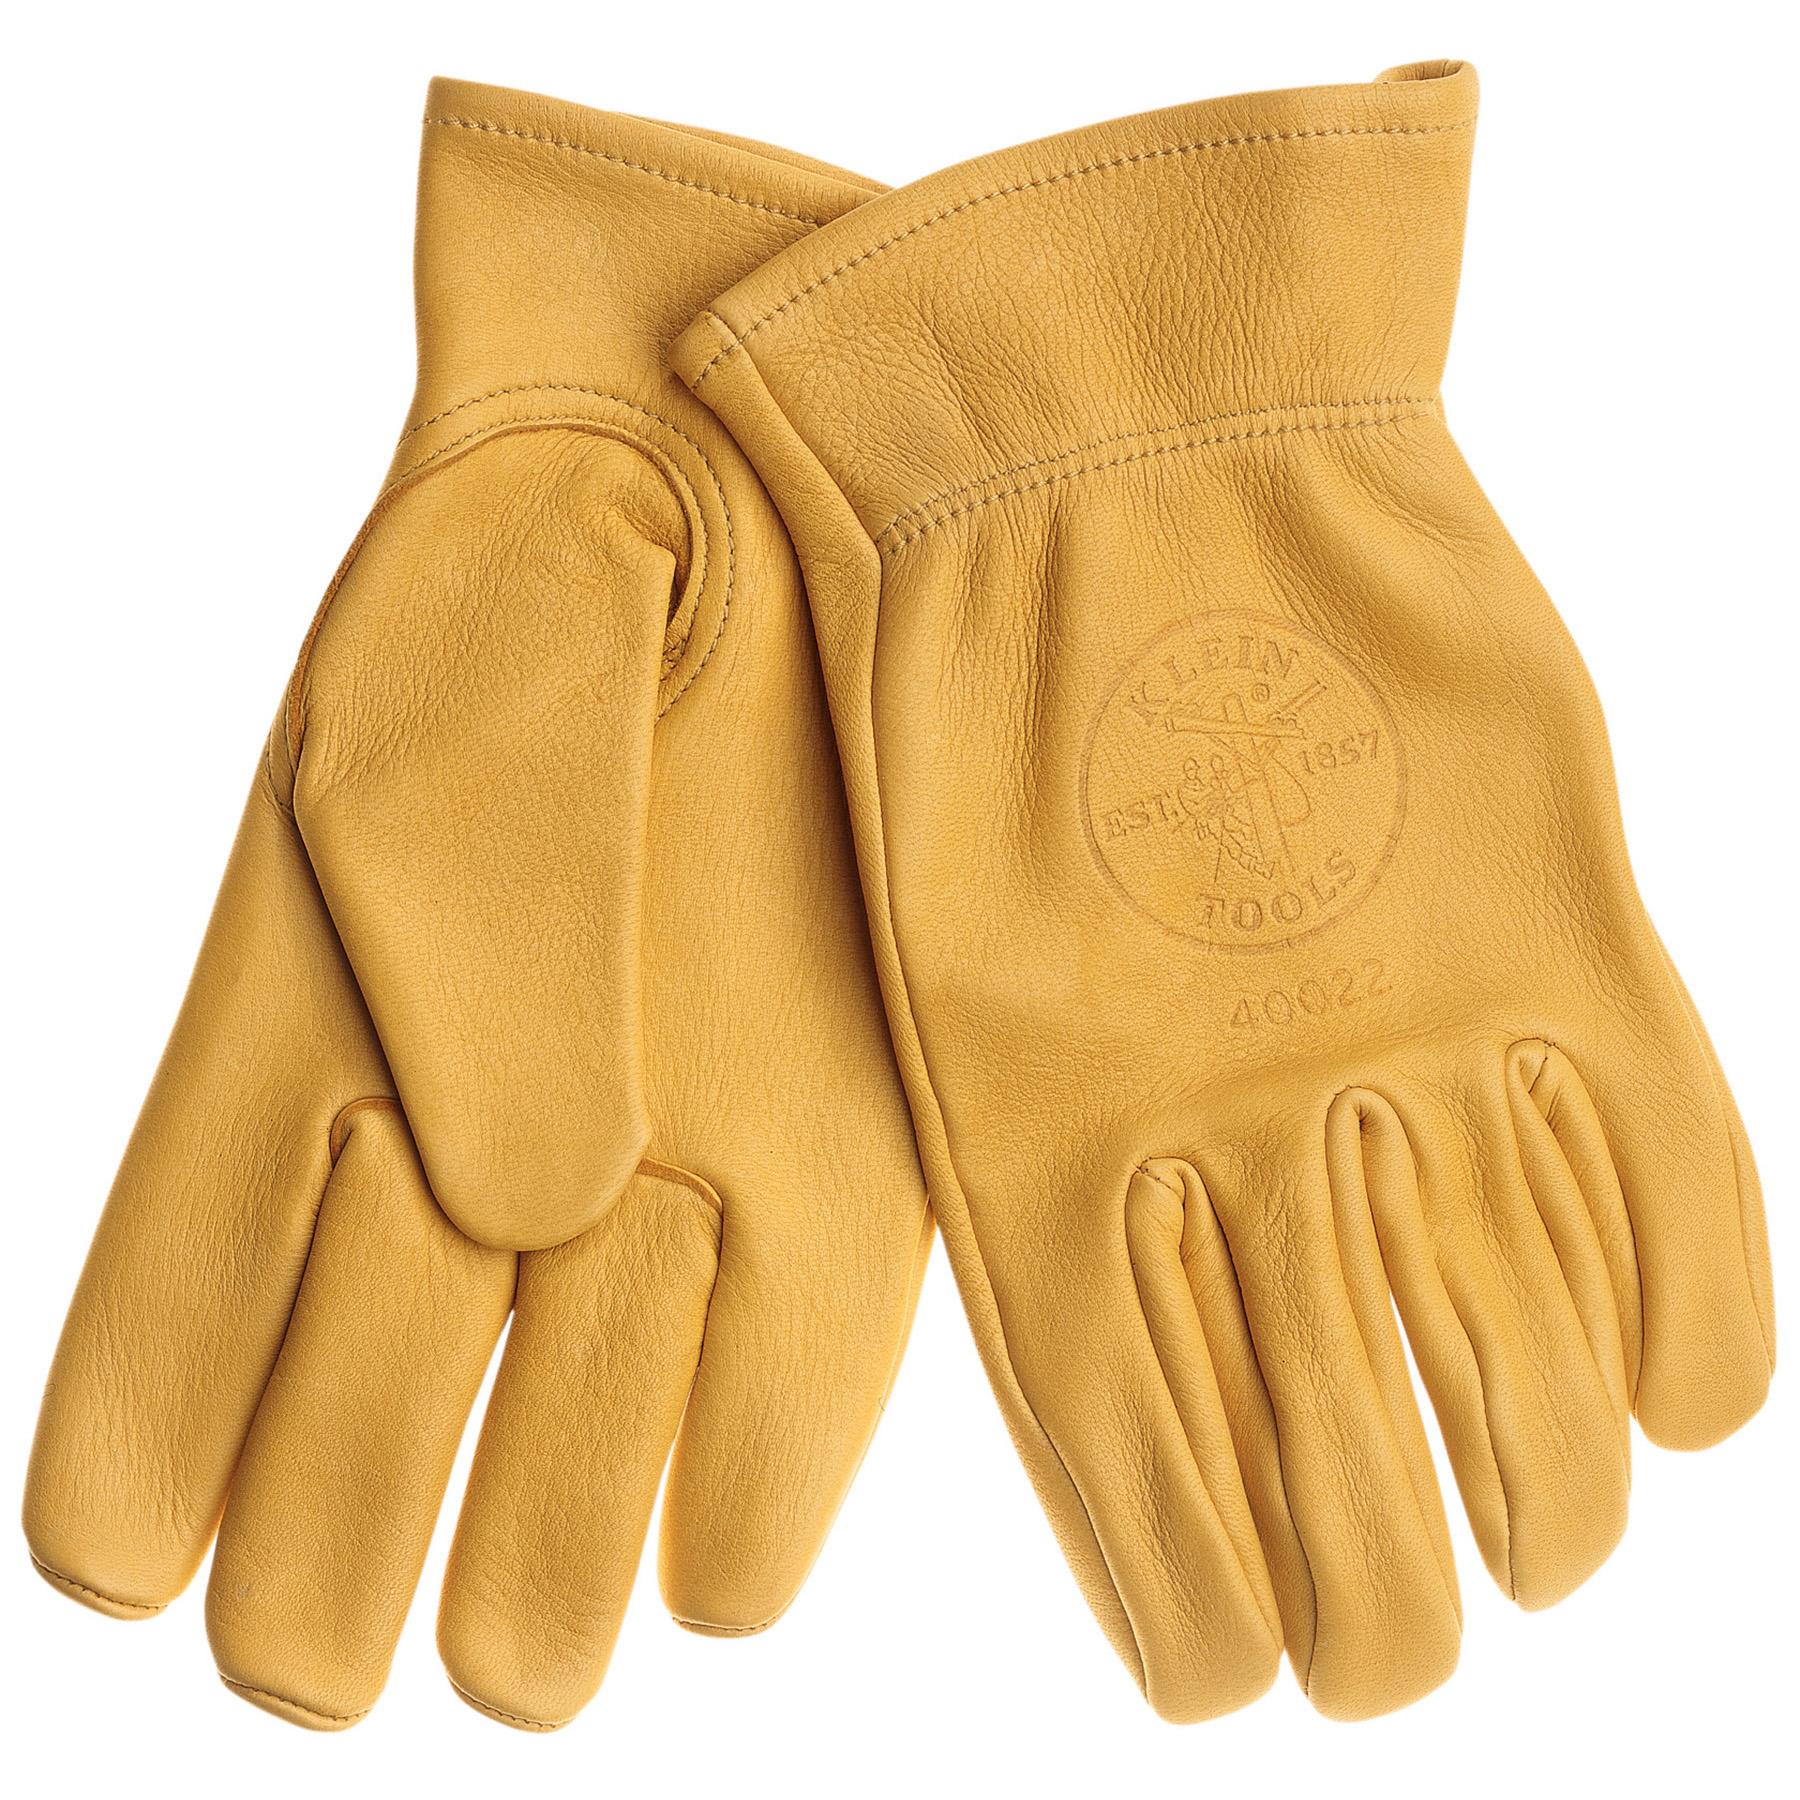 Cowhide work gloves xl 40023 klein tools for - Guantes de obra ...